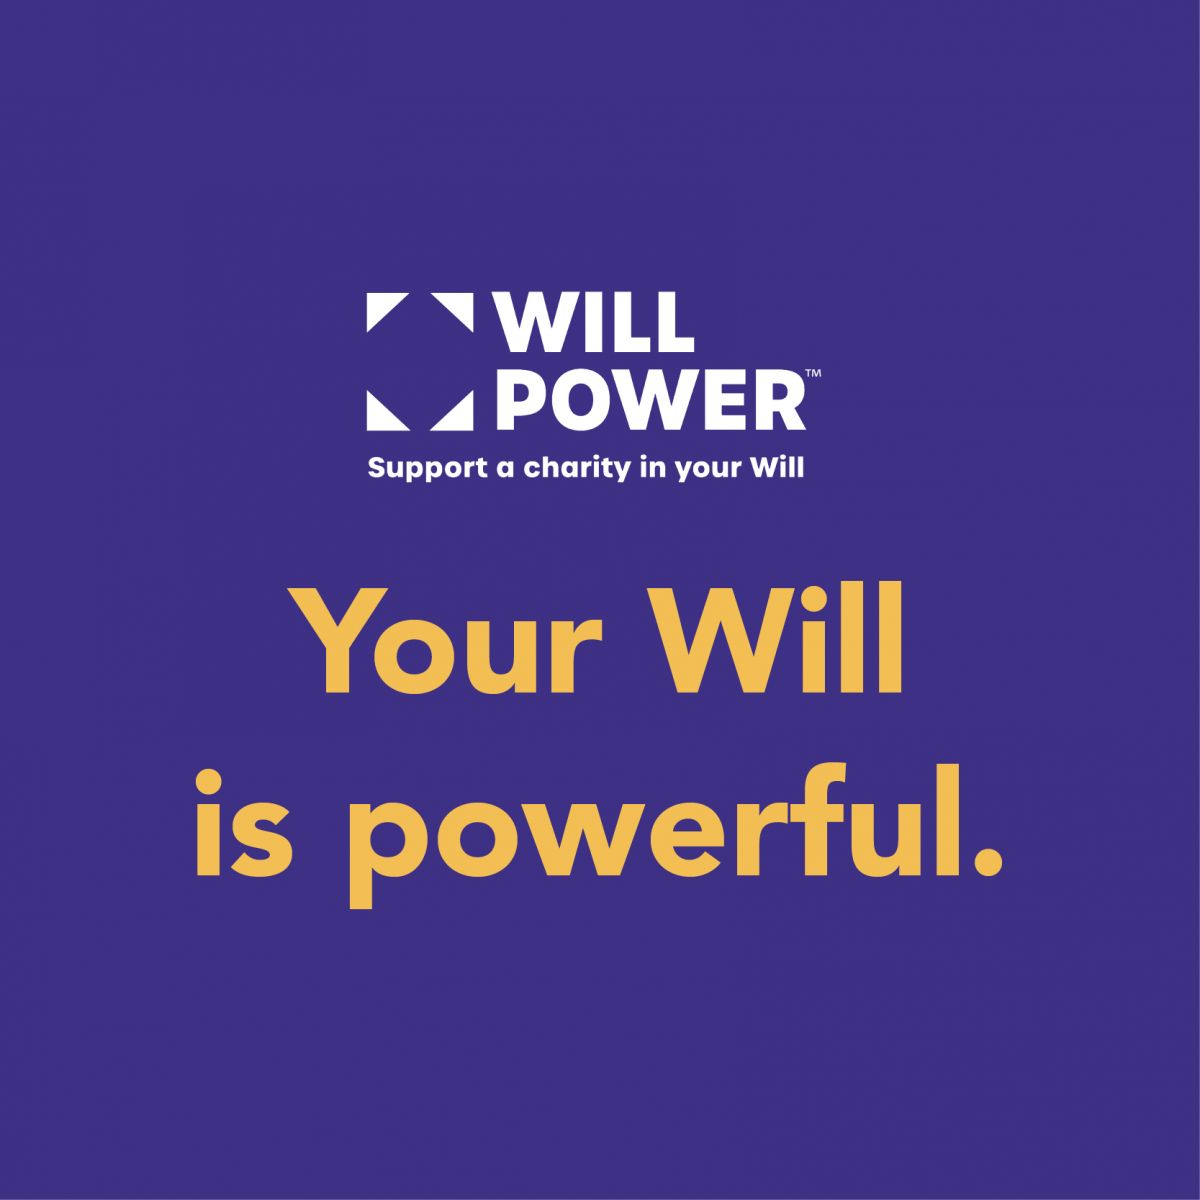 Interval House of Hamilton Becomes a Will Power Founding Partner